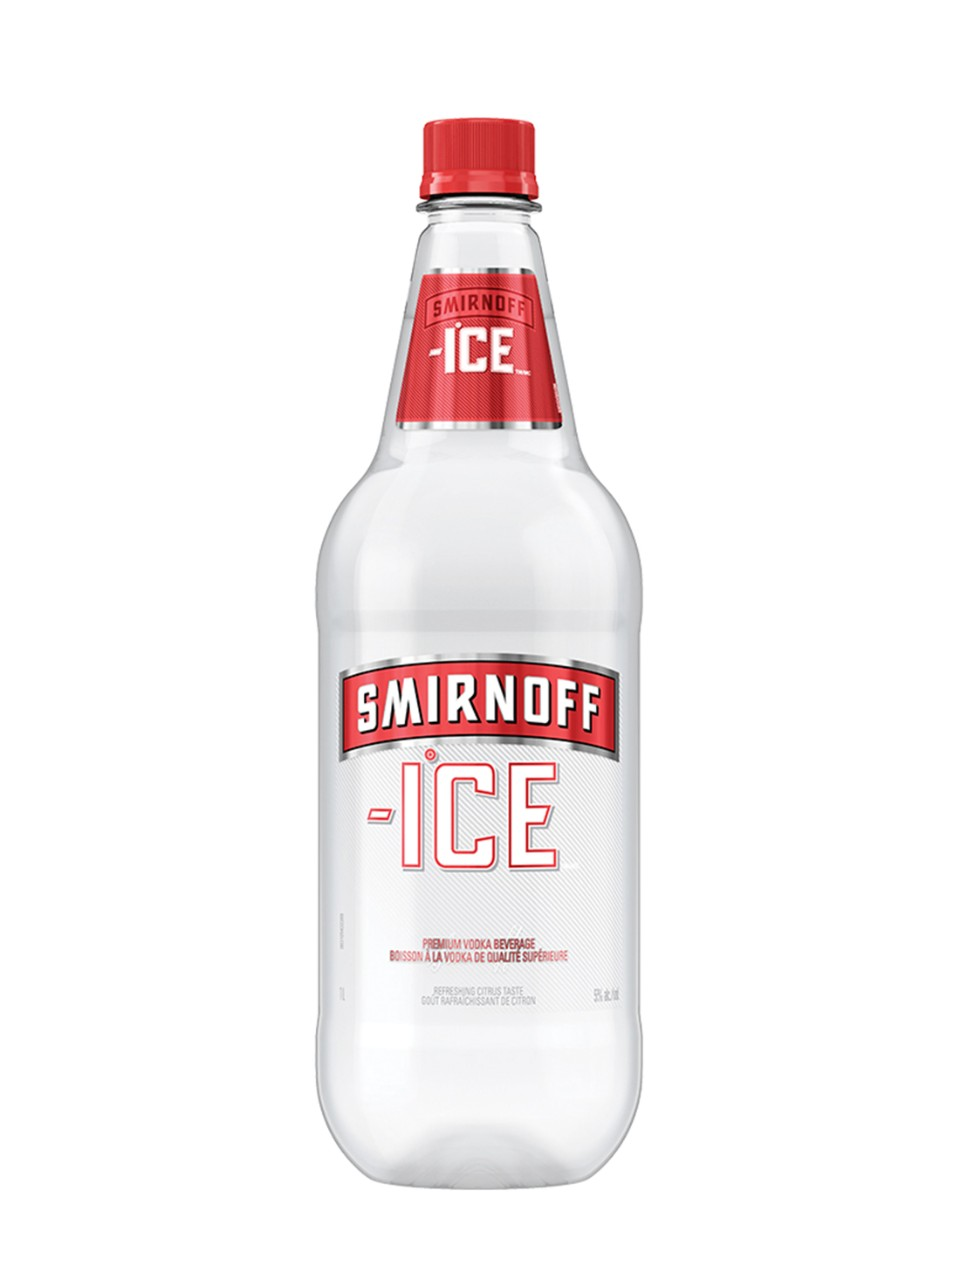 Smirnoff Ice from LCBO